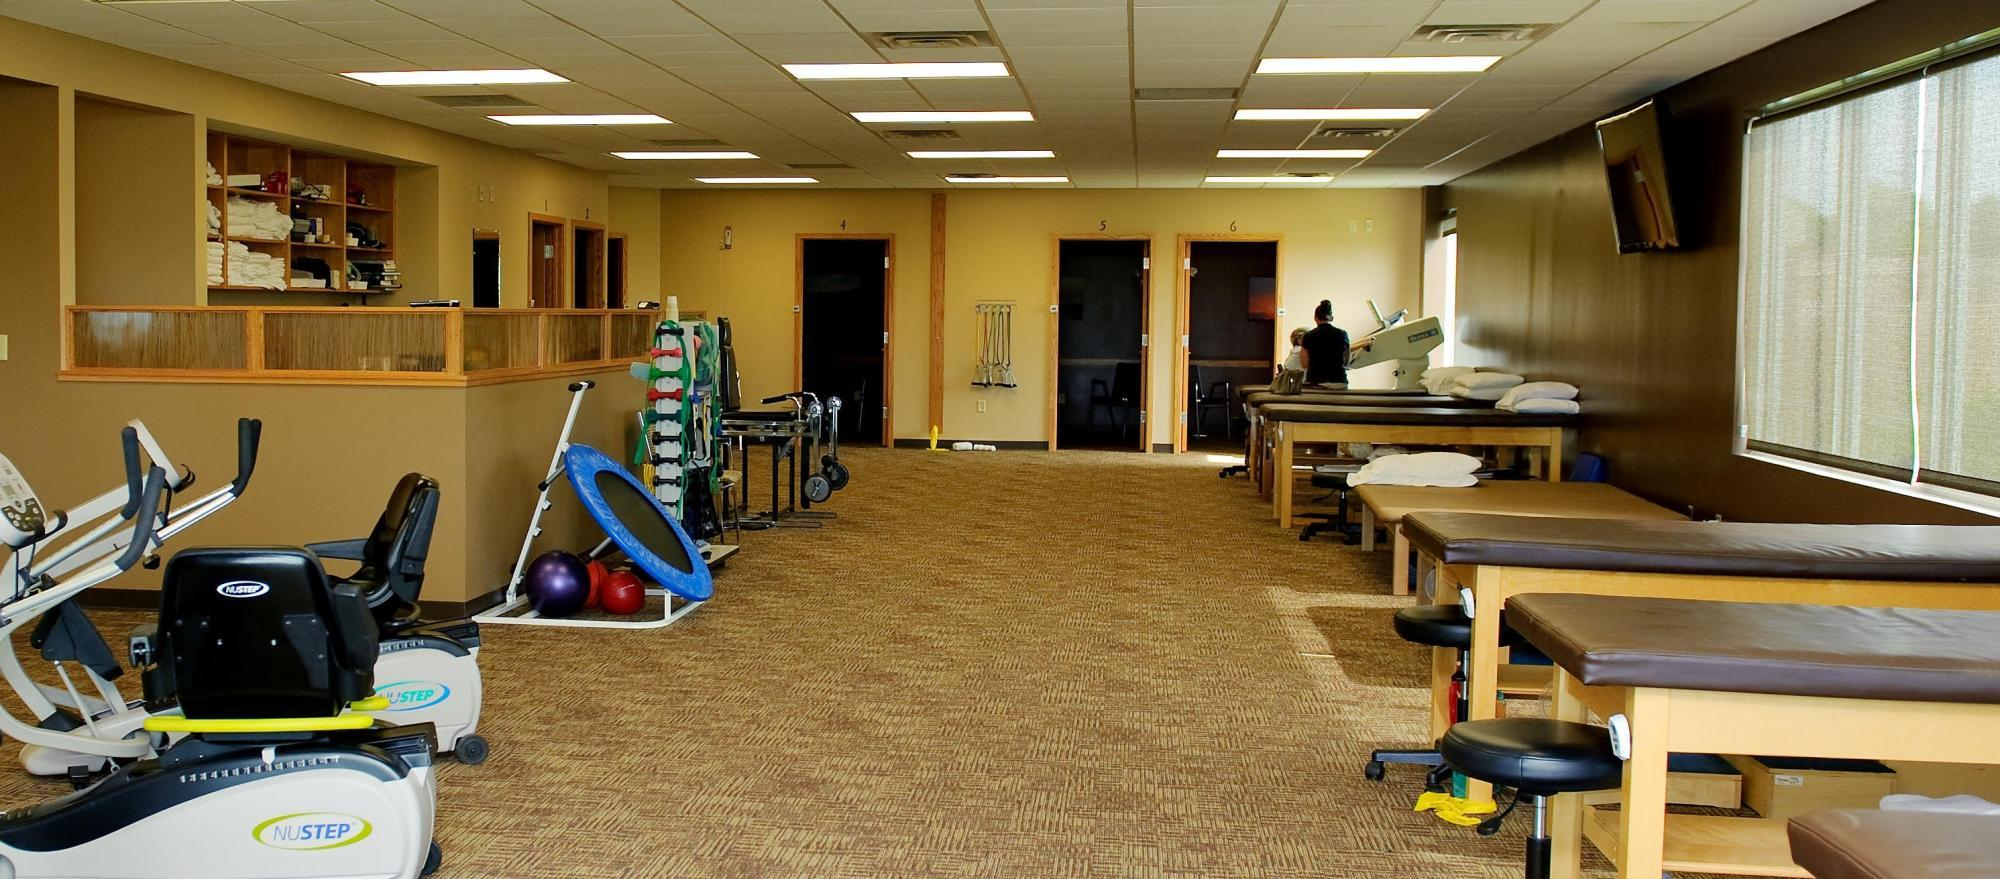 lincoln orthopedic physical therapy office interior